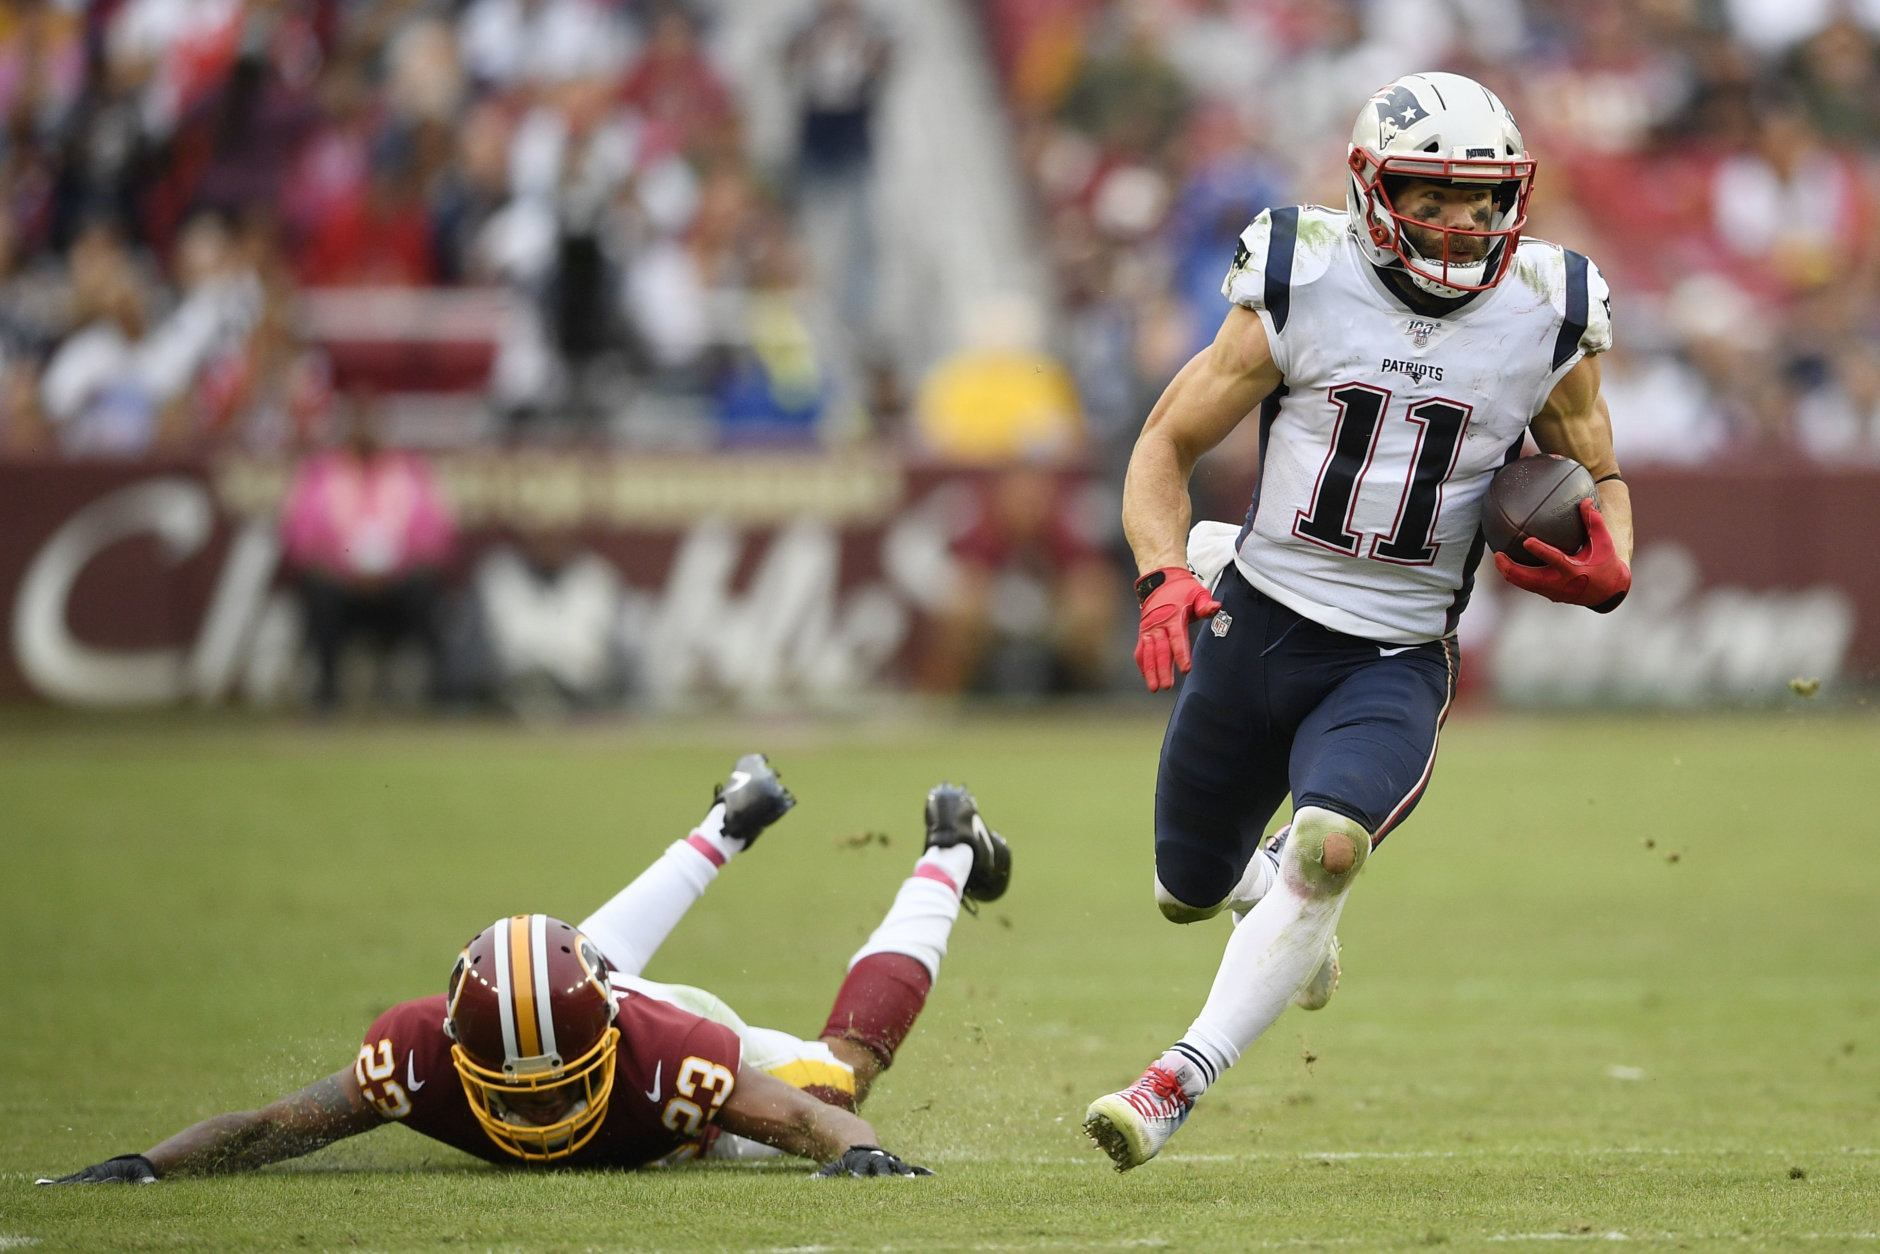 <p><b><i>Patriots 33</i></b><br /> <b><i>Redskins 7</i></b></p> <p>Tom Brady, in what amounted to a bonus home game, moved into third place on the all-time passing yardage list, while the New England defense still has yet to allow more than one offensive touchdown in a game this season. The Patriots are three weeks away from playing a team that can really challenge them but that six-week slate (Browns, at Ravens, at Eagles, Cowboys, at Texans, Chiefs) will tell us if this is an all-time great team or just one good at beating up on bad teams.</p>